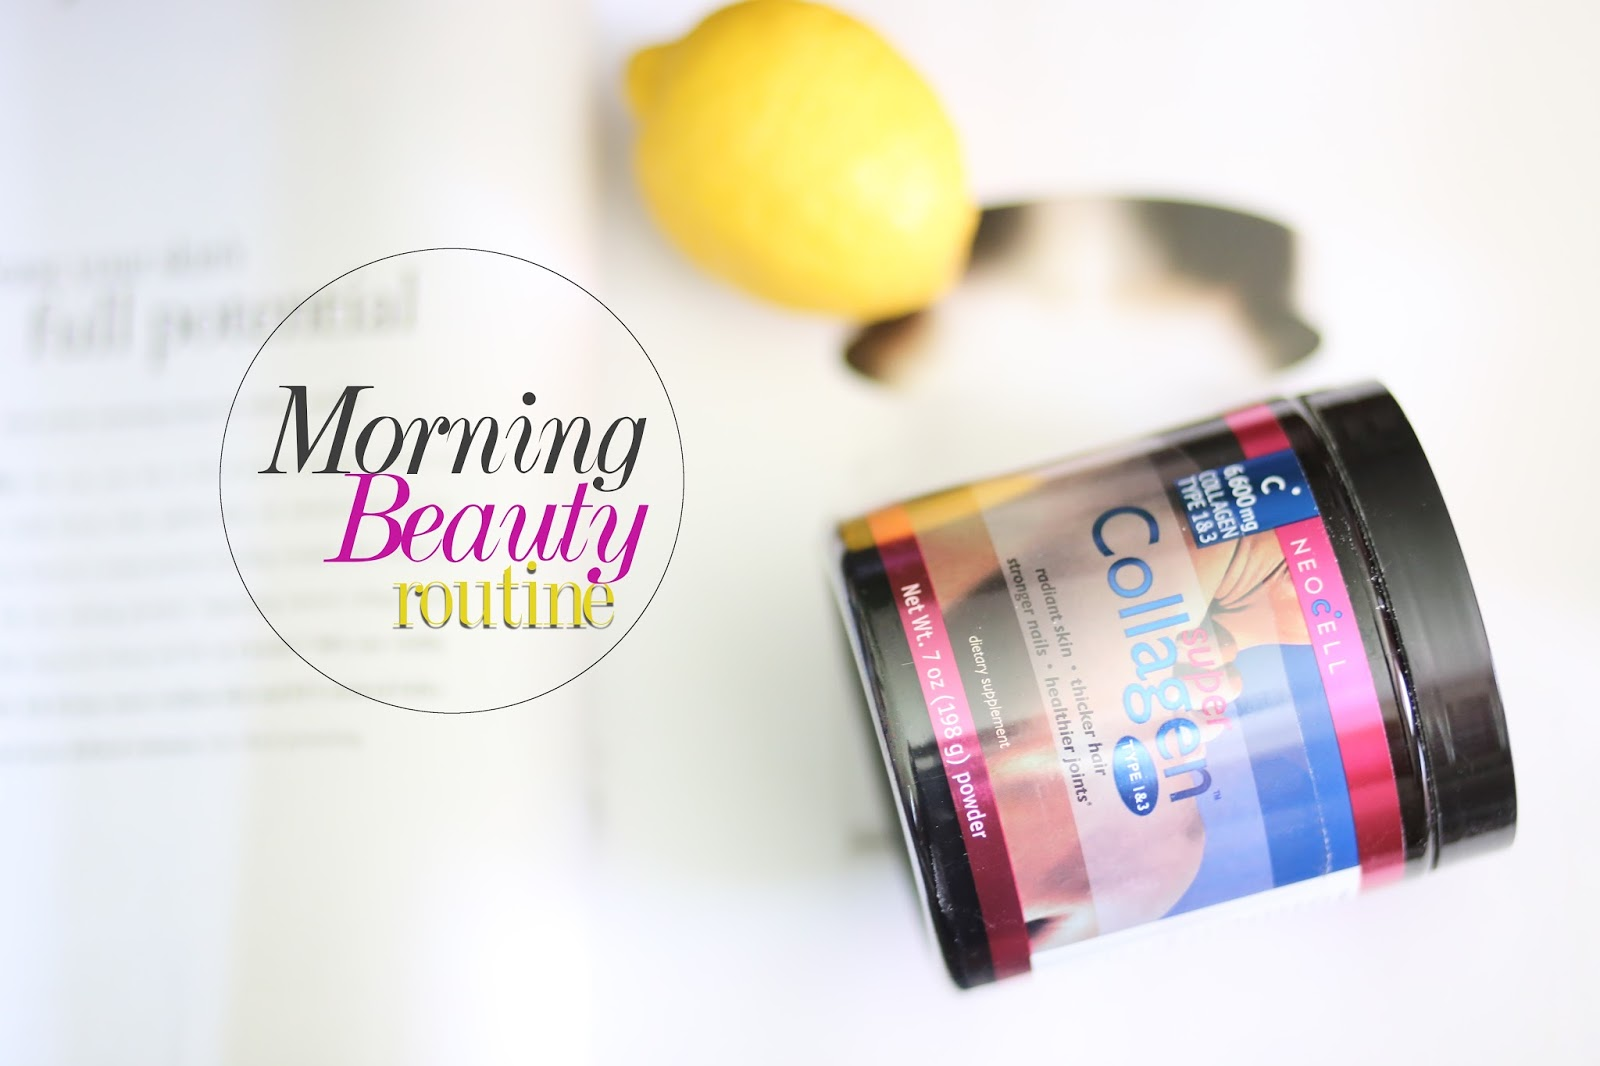 Beautiful Morning Neocell Super Collagen Ritual